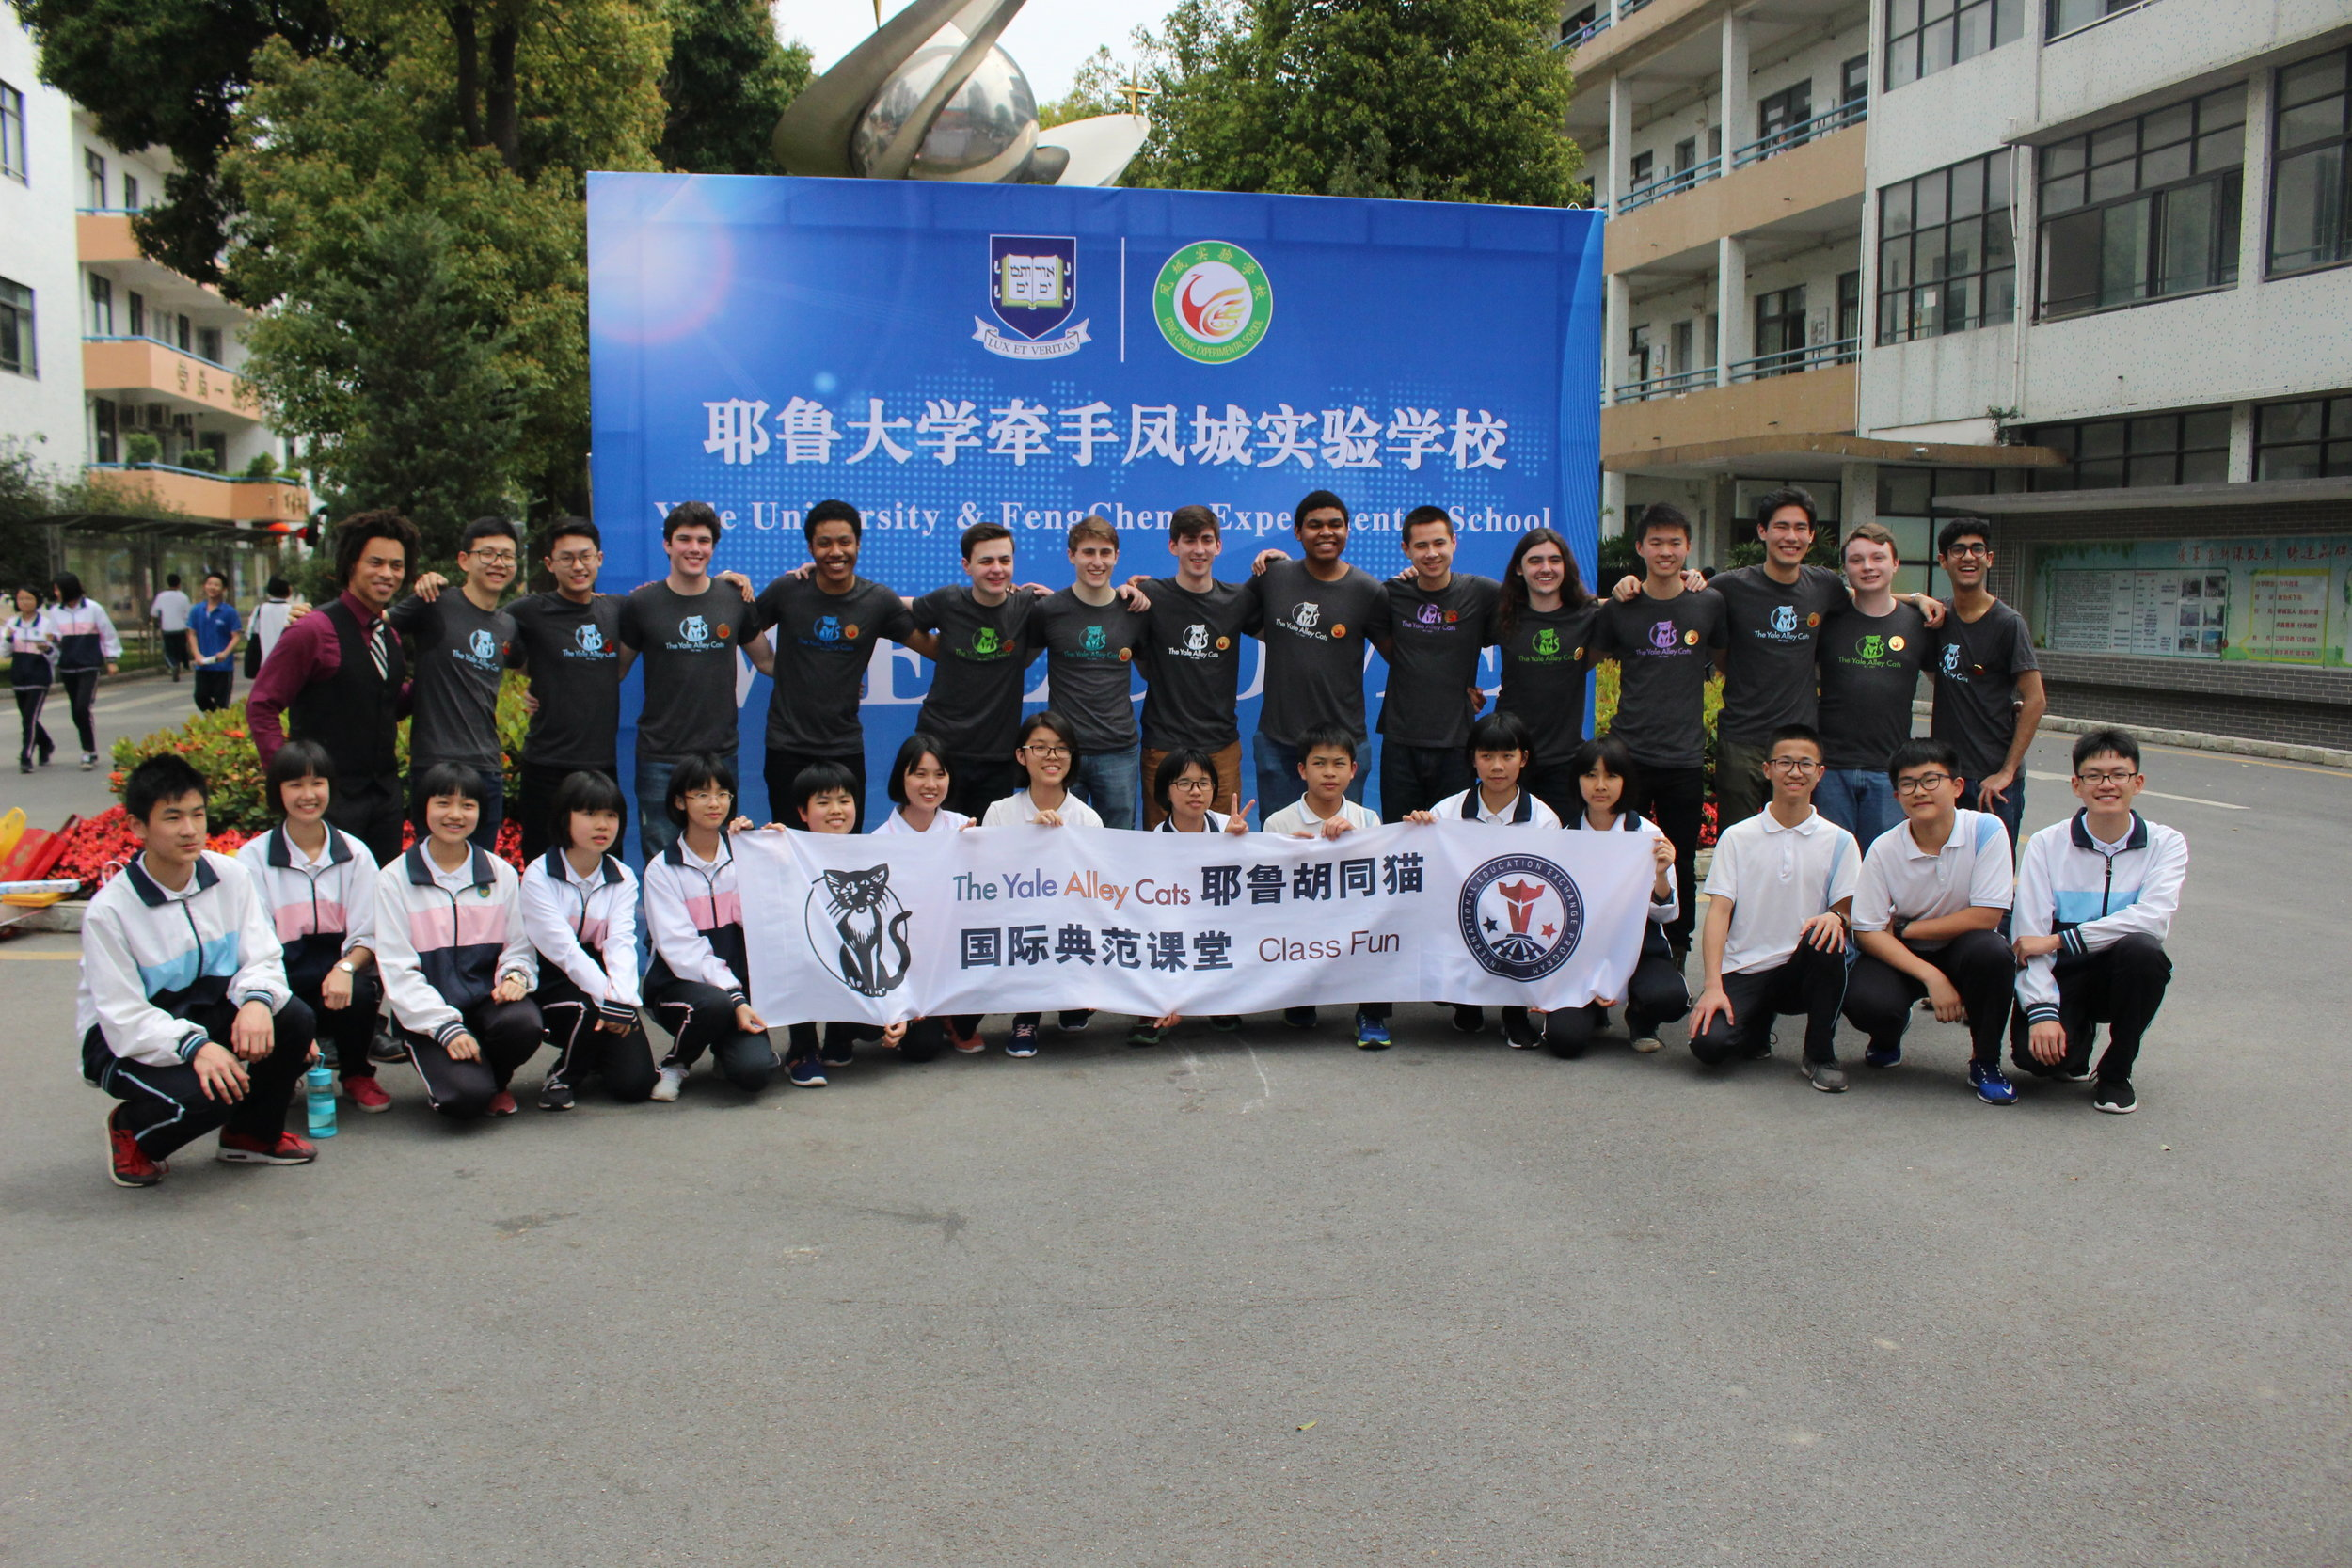 At the Fengcheng experimental school in Shunde